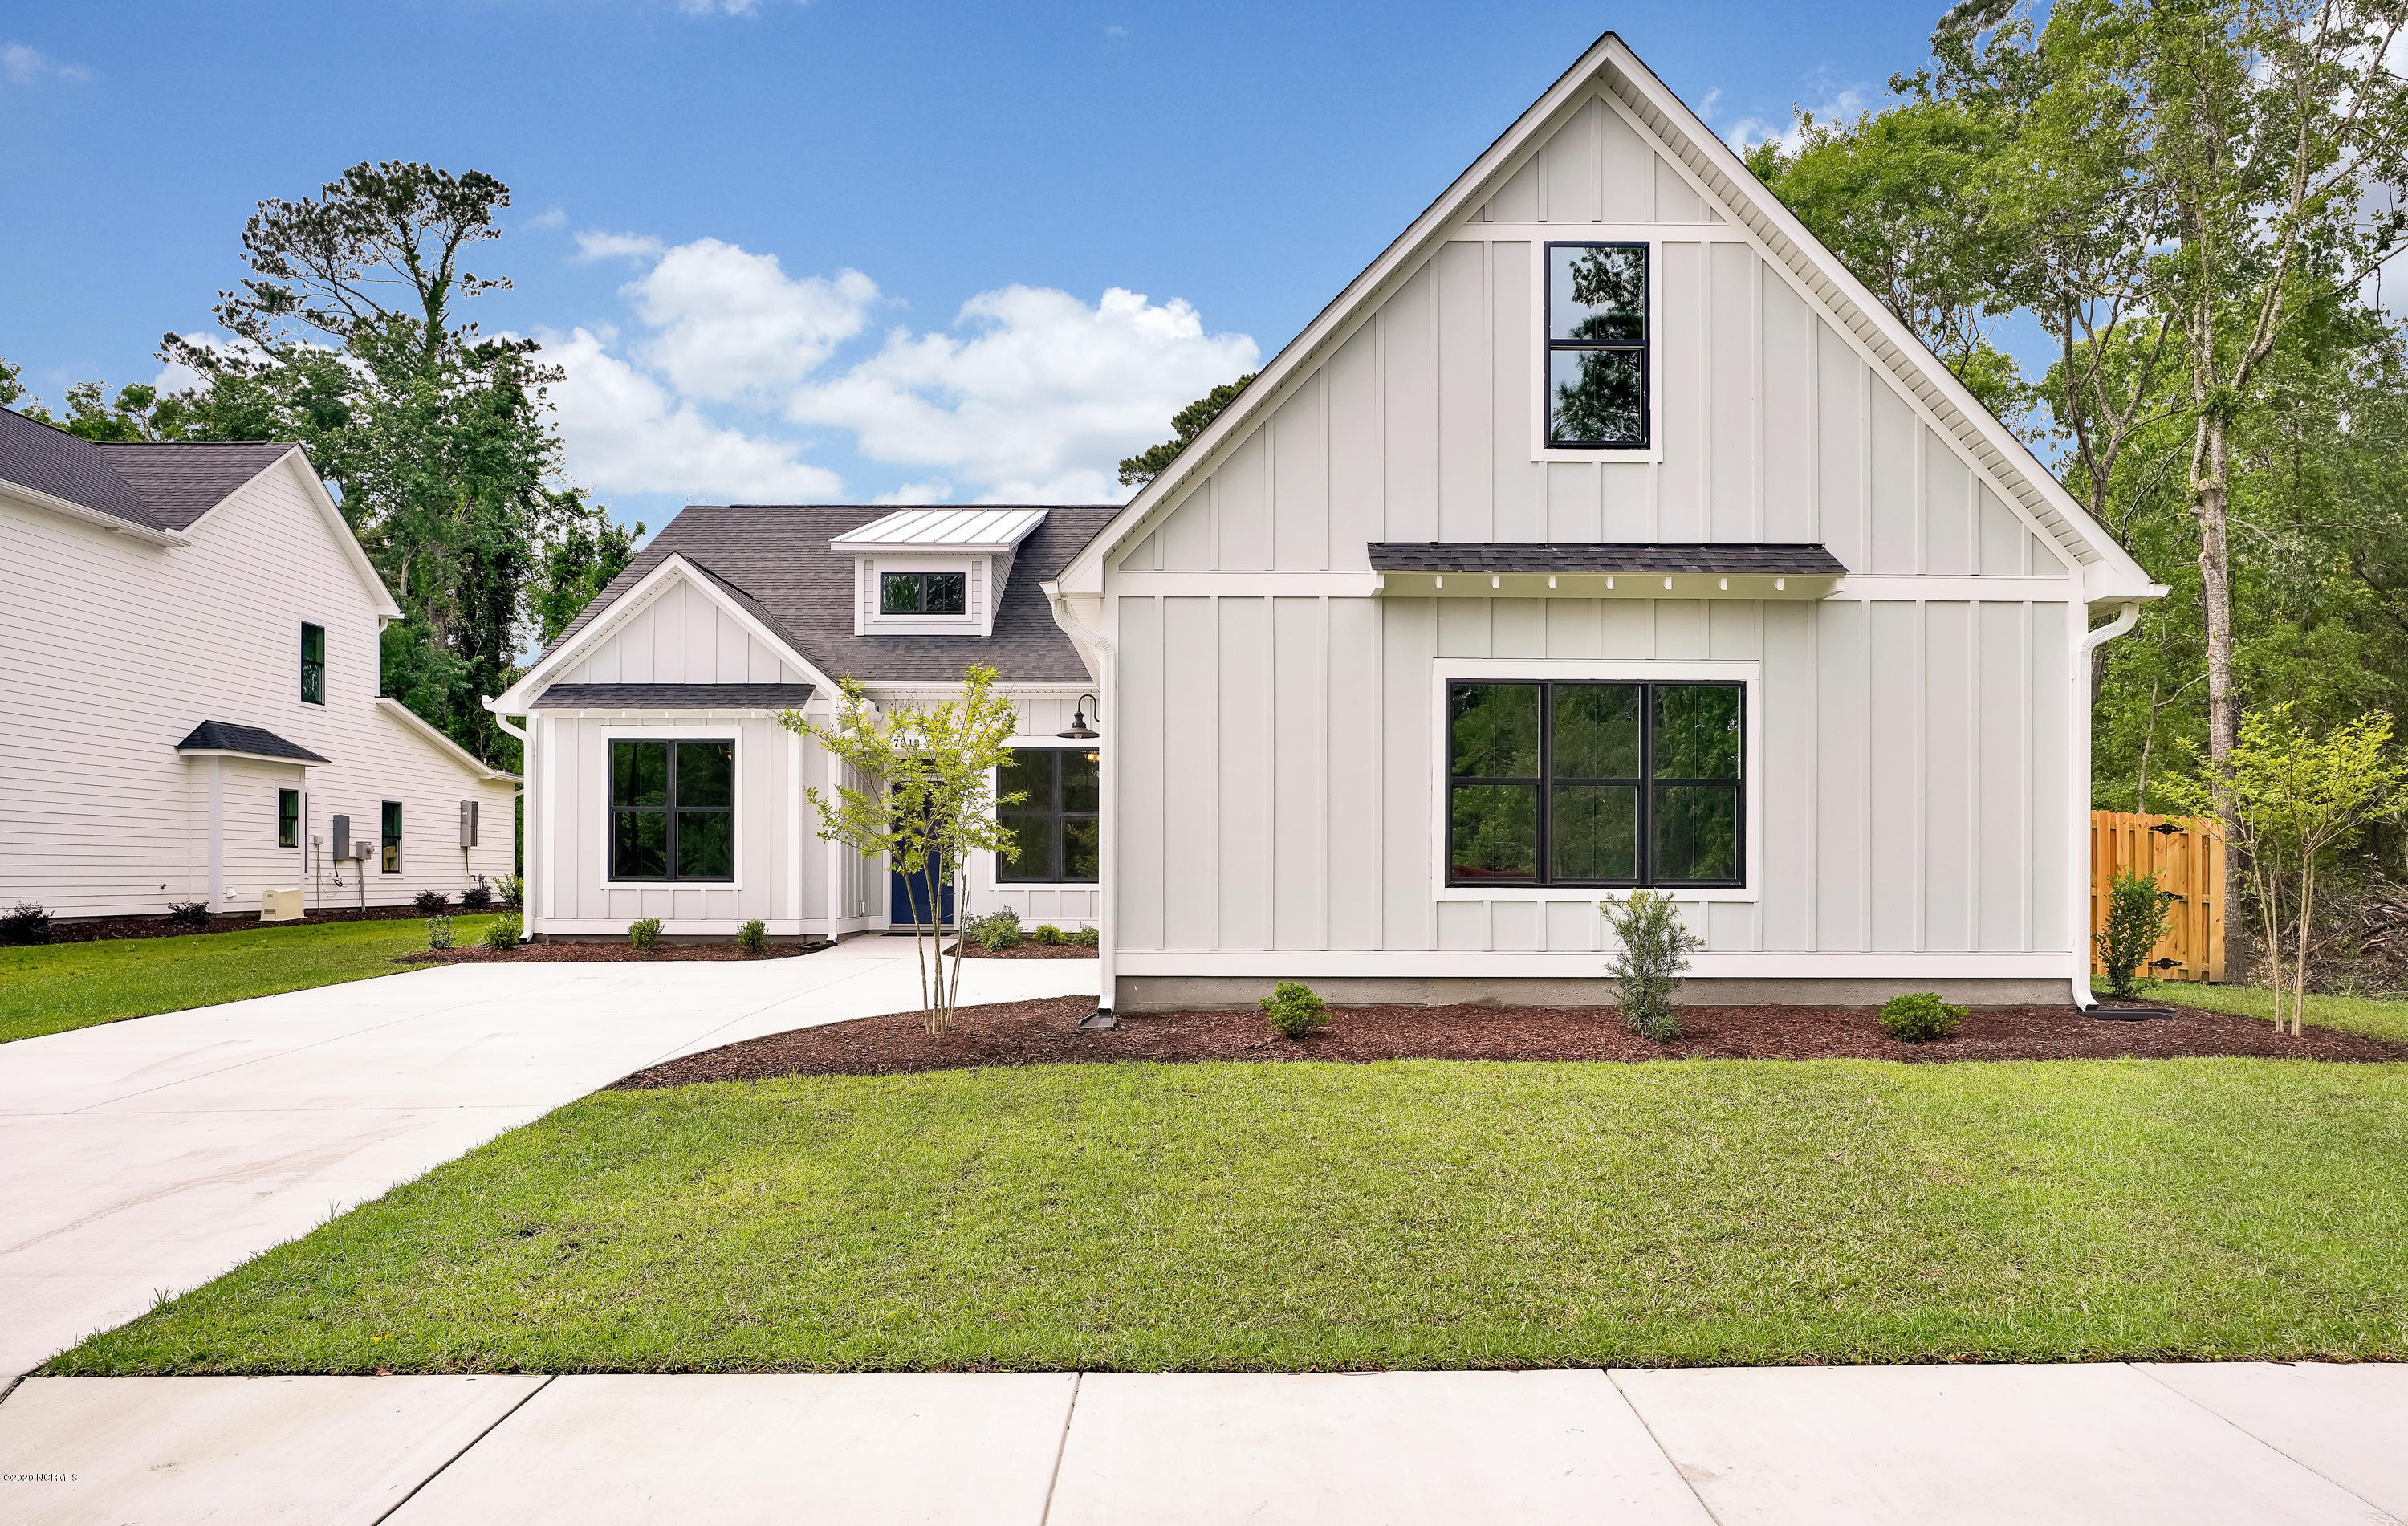 7210 Albacore Way, Wilmington, North Carolina 28411, 3 Bedrooms Bedrooms, 8 Rooms Rooms,2 BathroomsBathrooms,Single family residence,For sale,Albacore,100149647